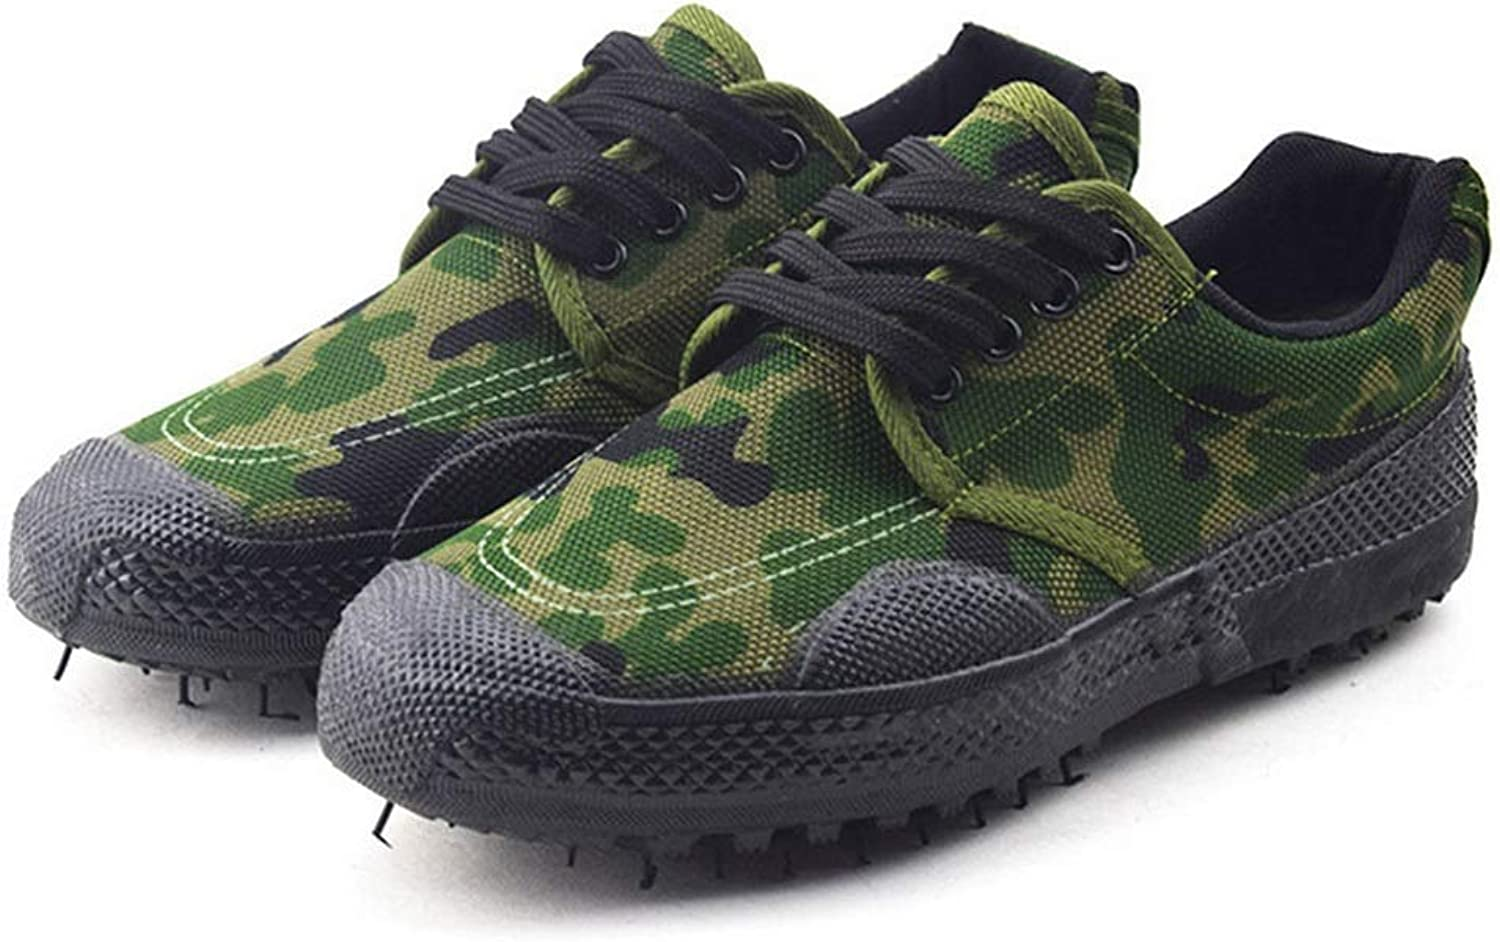 KERVINFENDRIYUN Low Help Liberation shoes Outdoor Site Mountaineering Labor Insurance Camouflage Rubber shoes Men's Training shoes